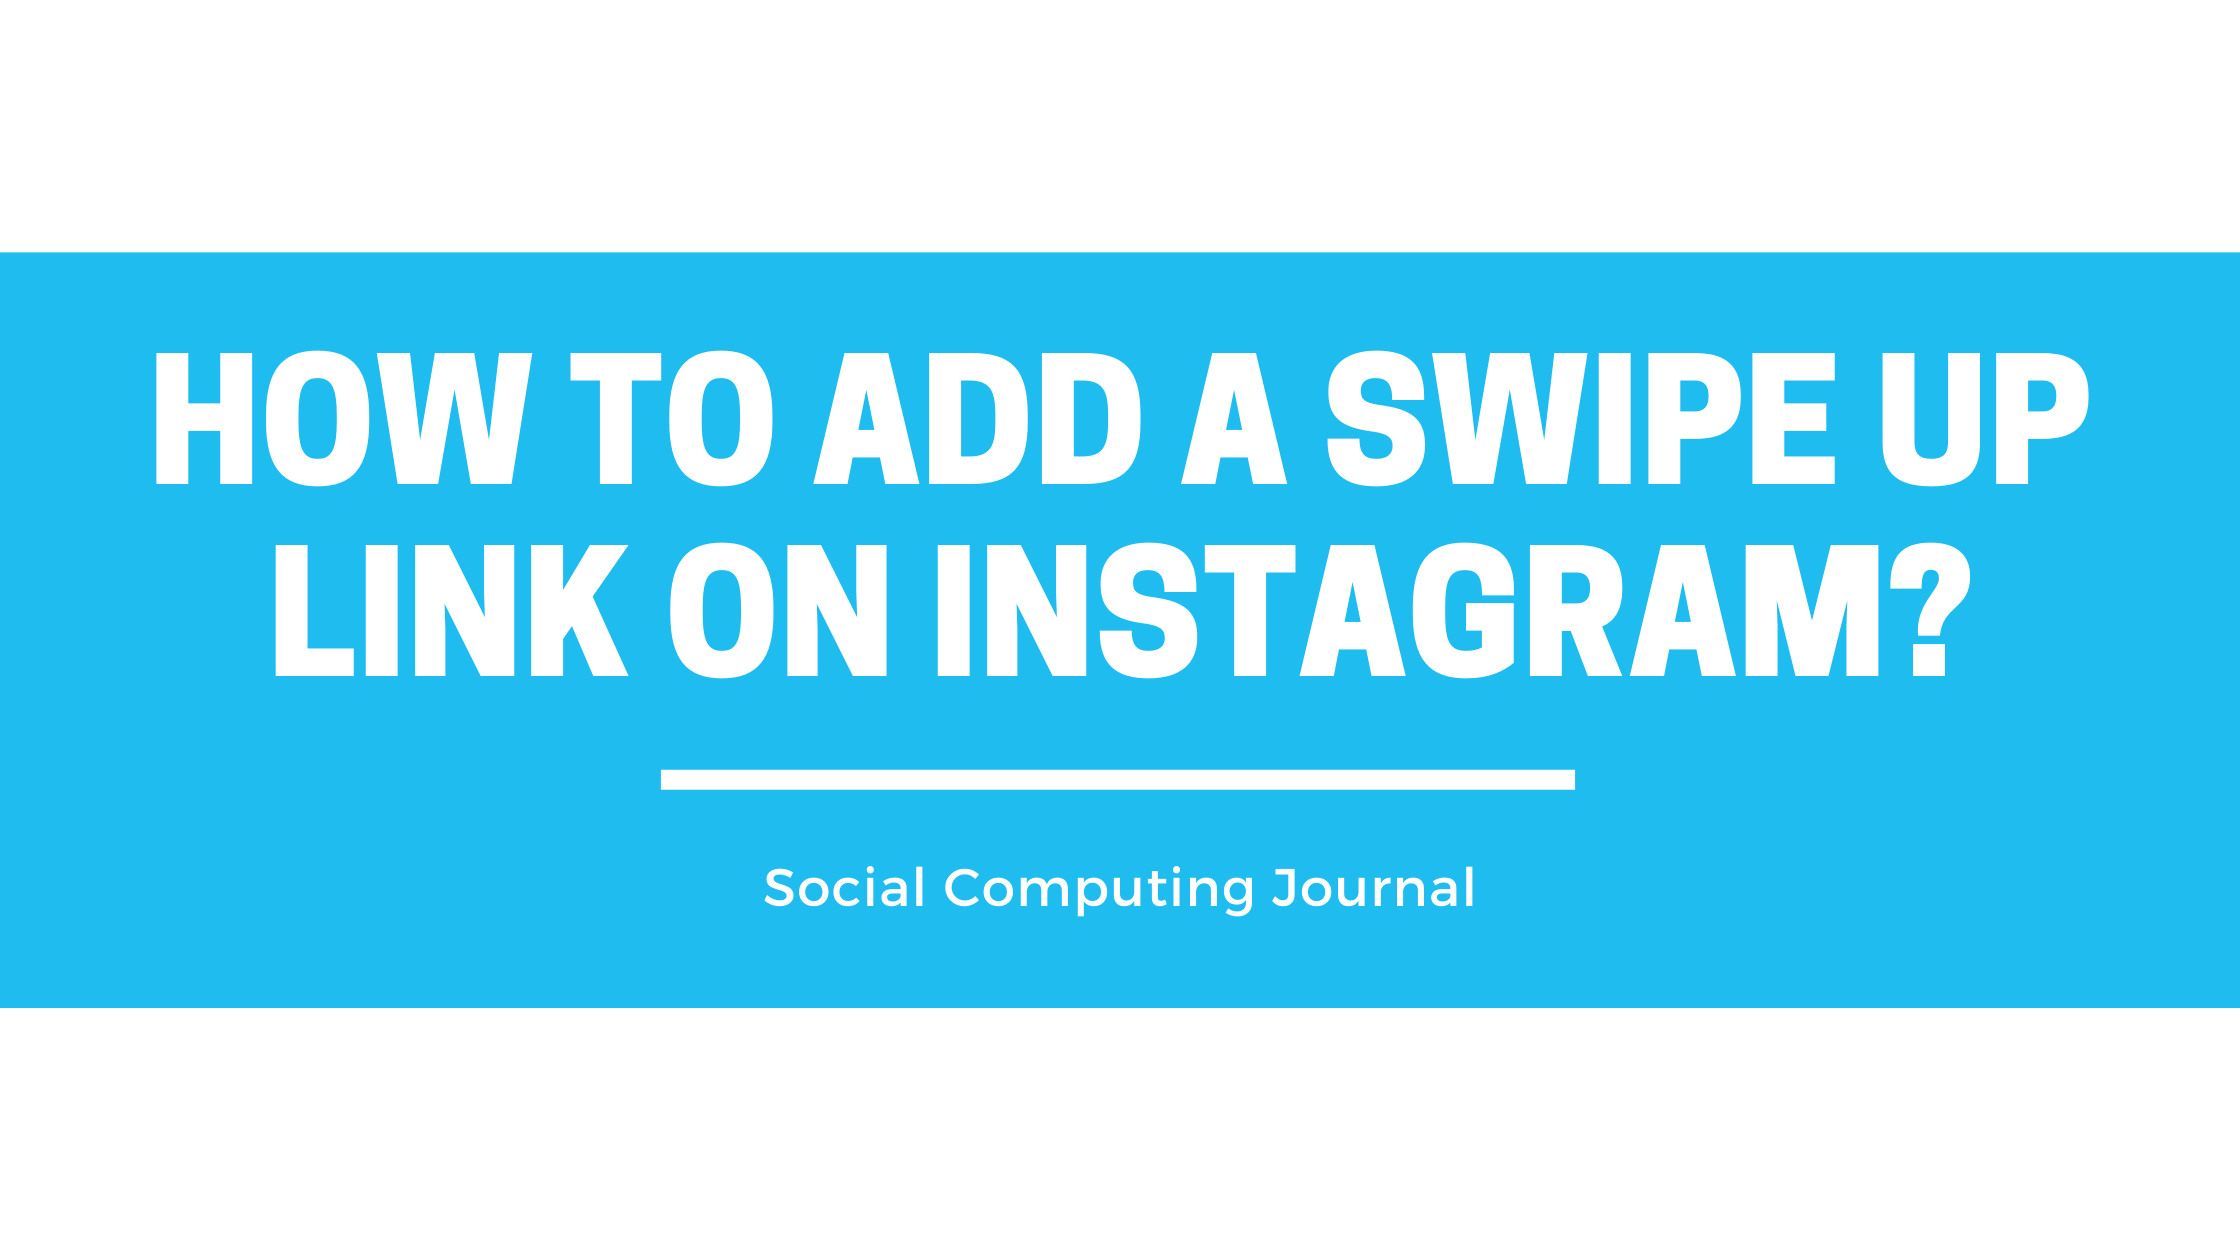 How to Add a Swipe Up Link on Instagram